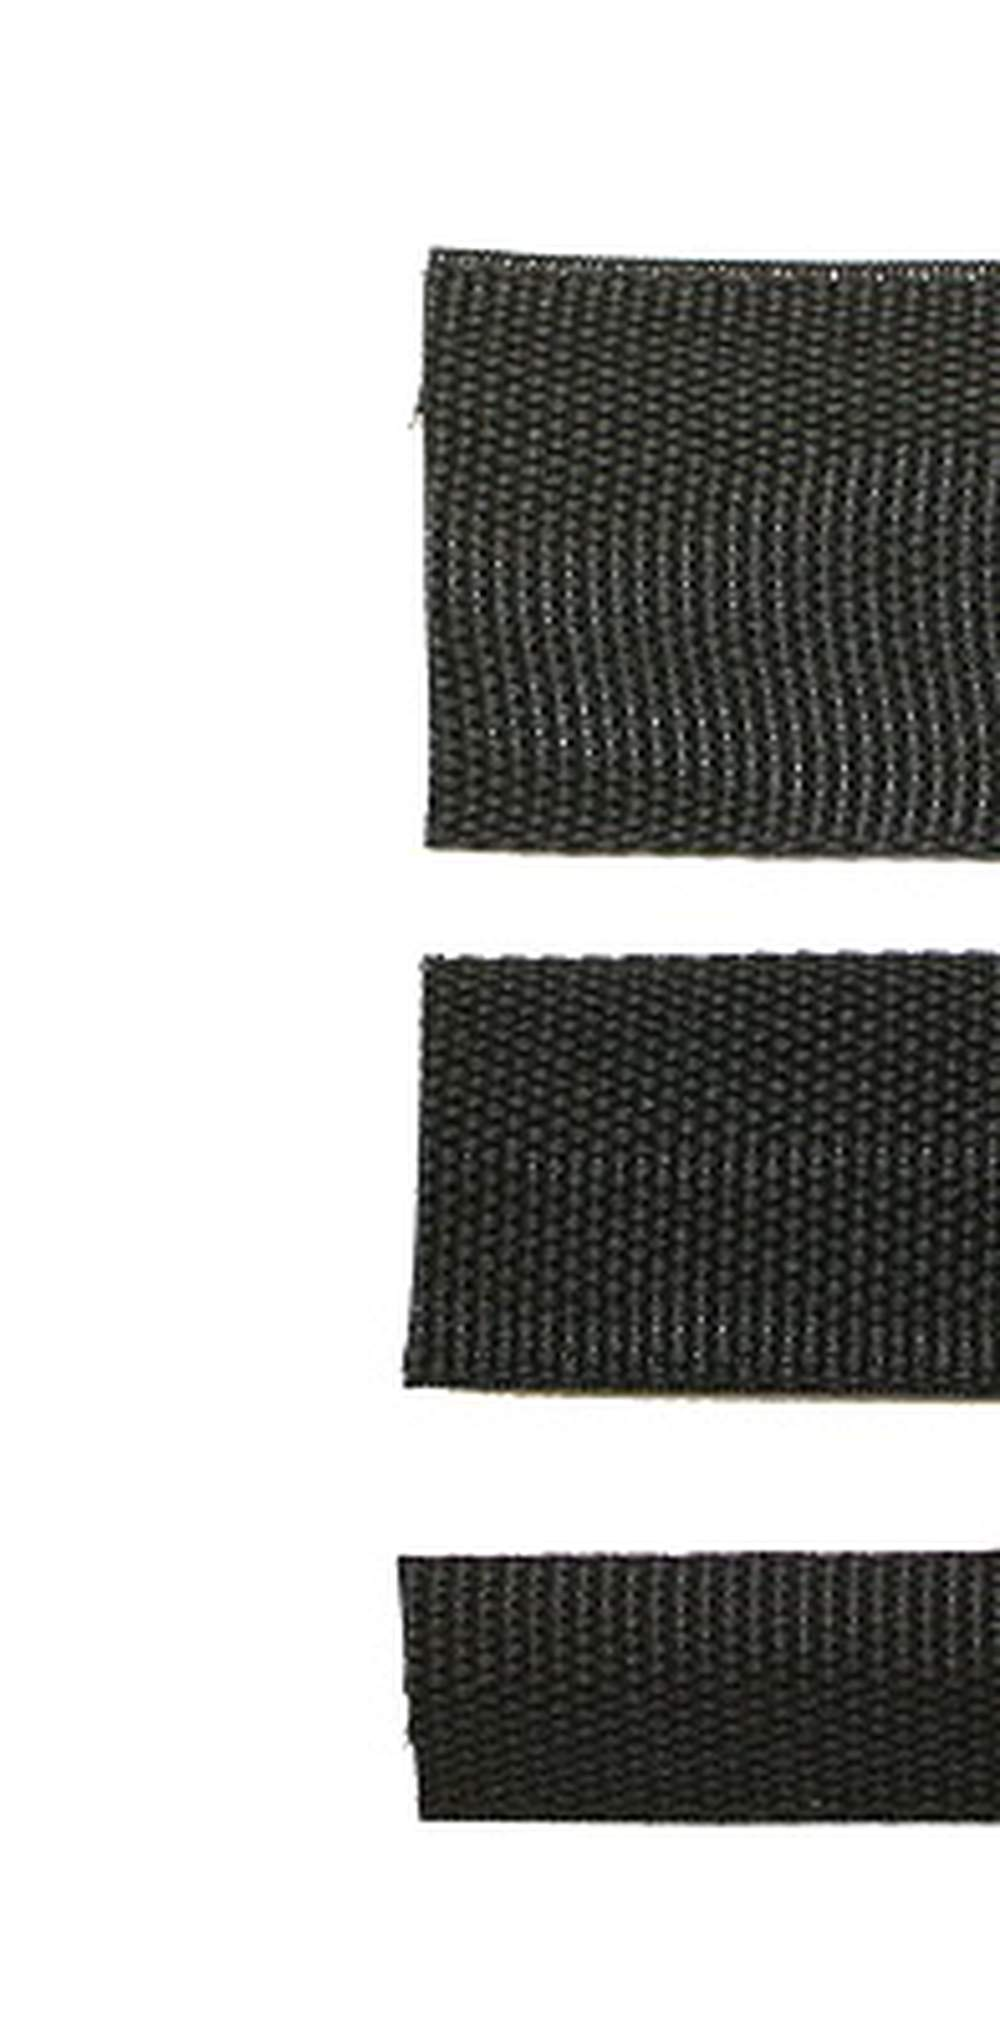 BW-50K  1/2 Braided Fabric Heat Shrink Wire Covering - 50 FT